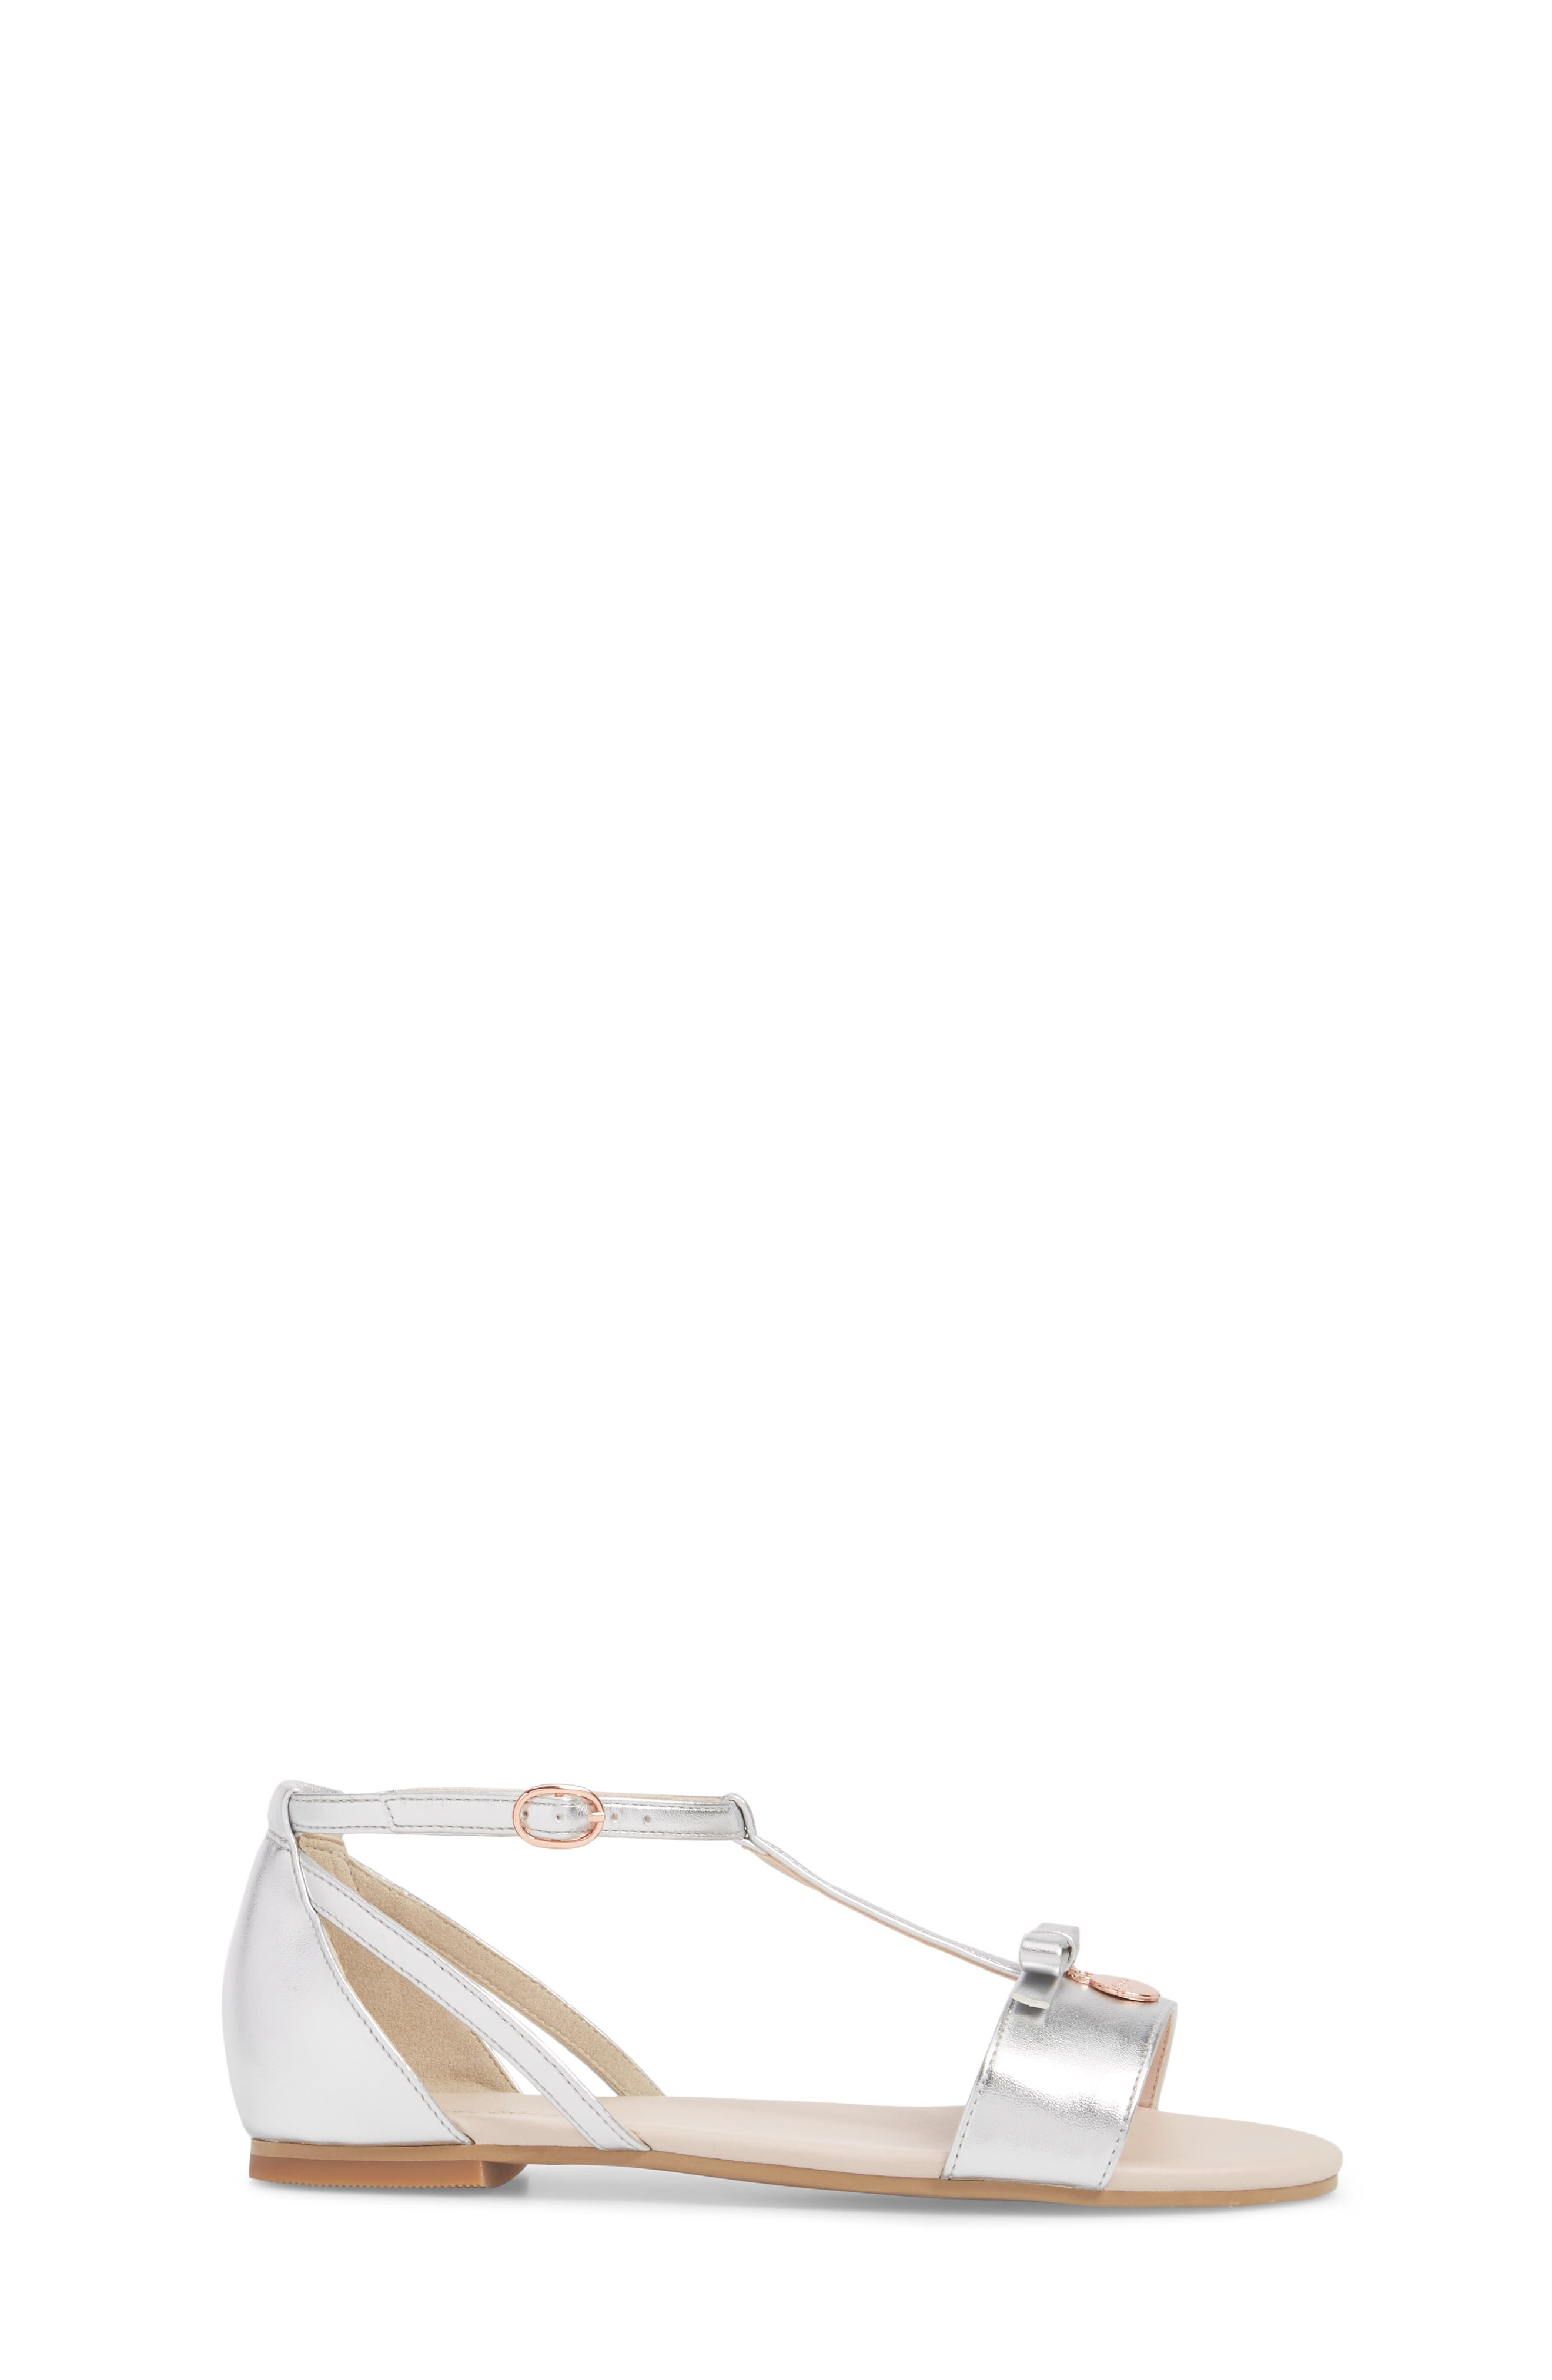 Valentina Metallic T-Strap Sandal,                             Alternate thumbnail 3, color,                             Silver Faux Leather